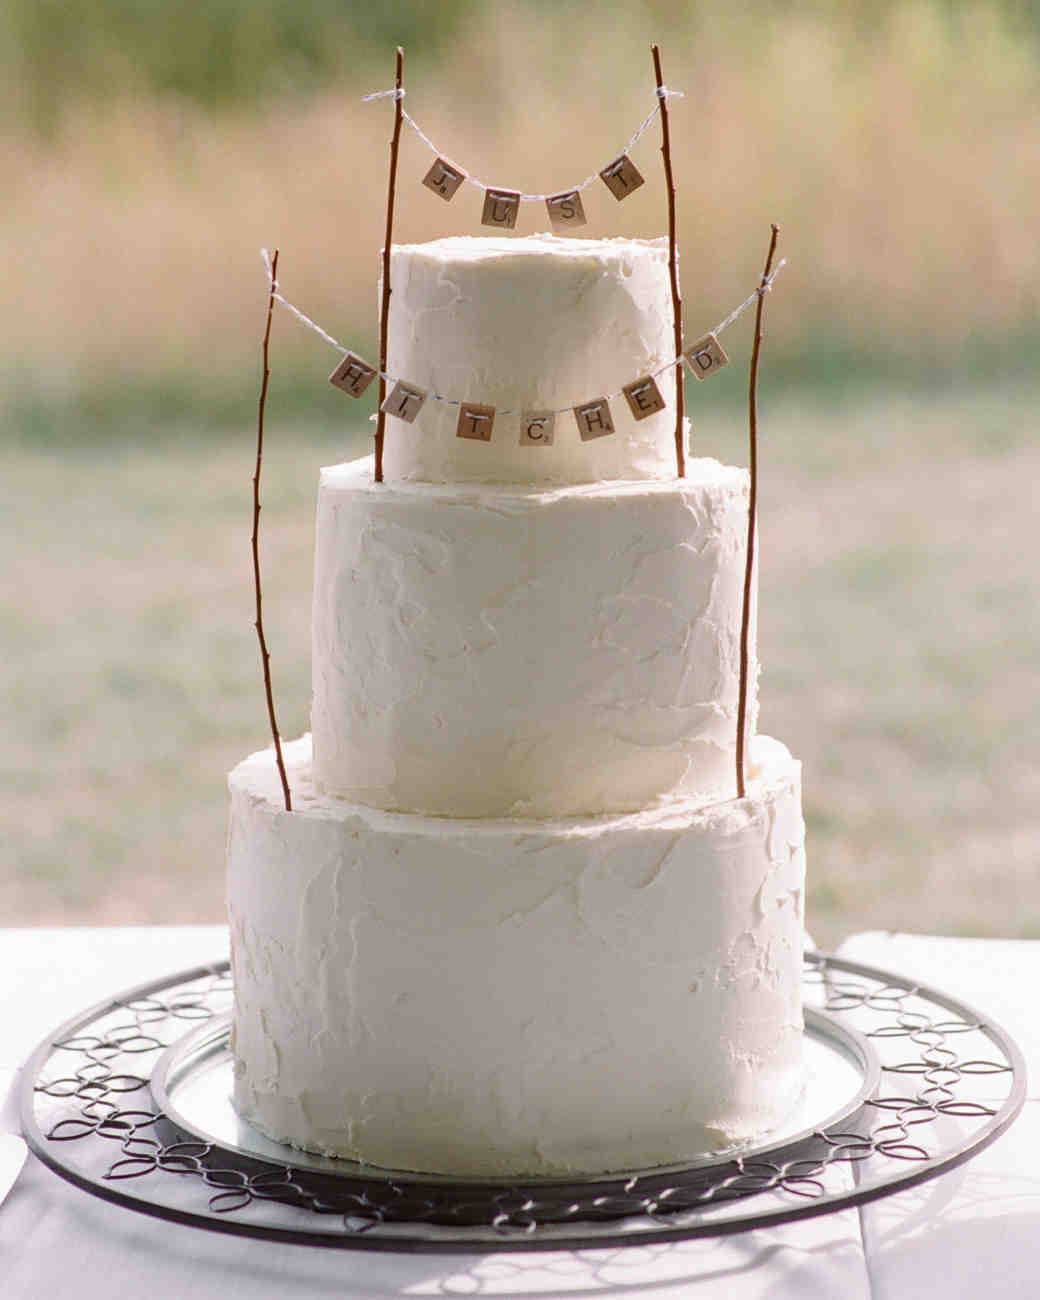 Three-Tiered White Wedding Cake with Scrabble Tile and Twine Garland Topper